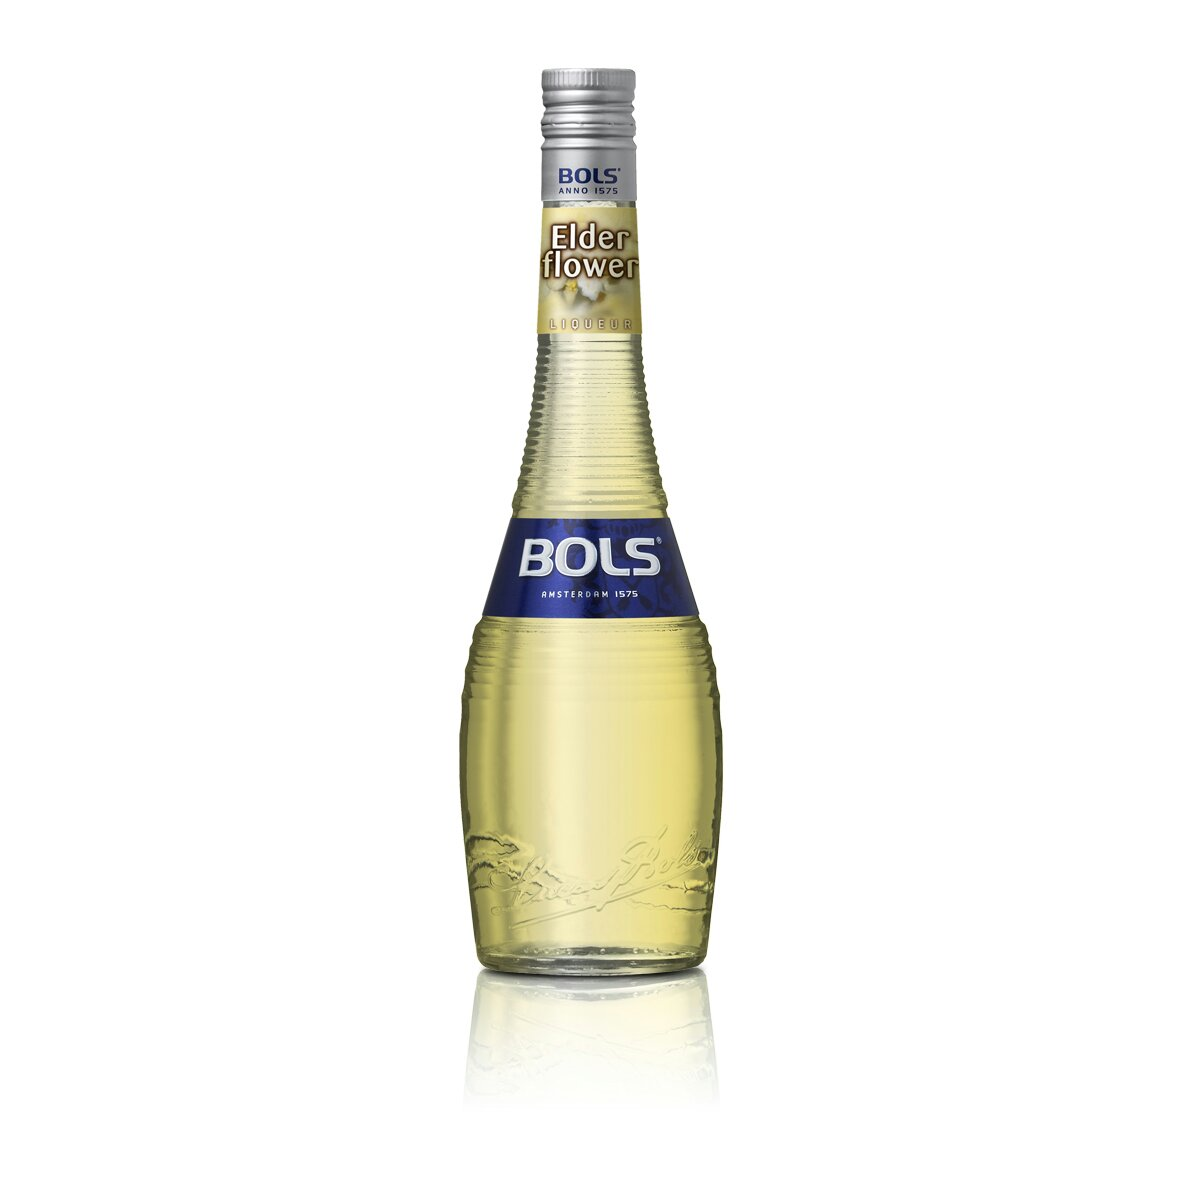 Bols_Elderflower1387108599472